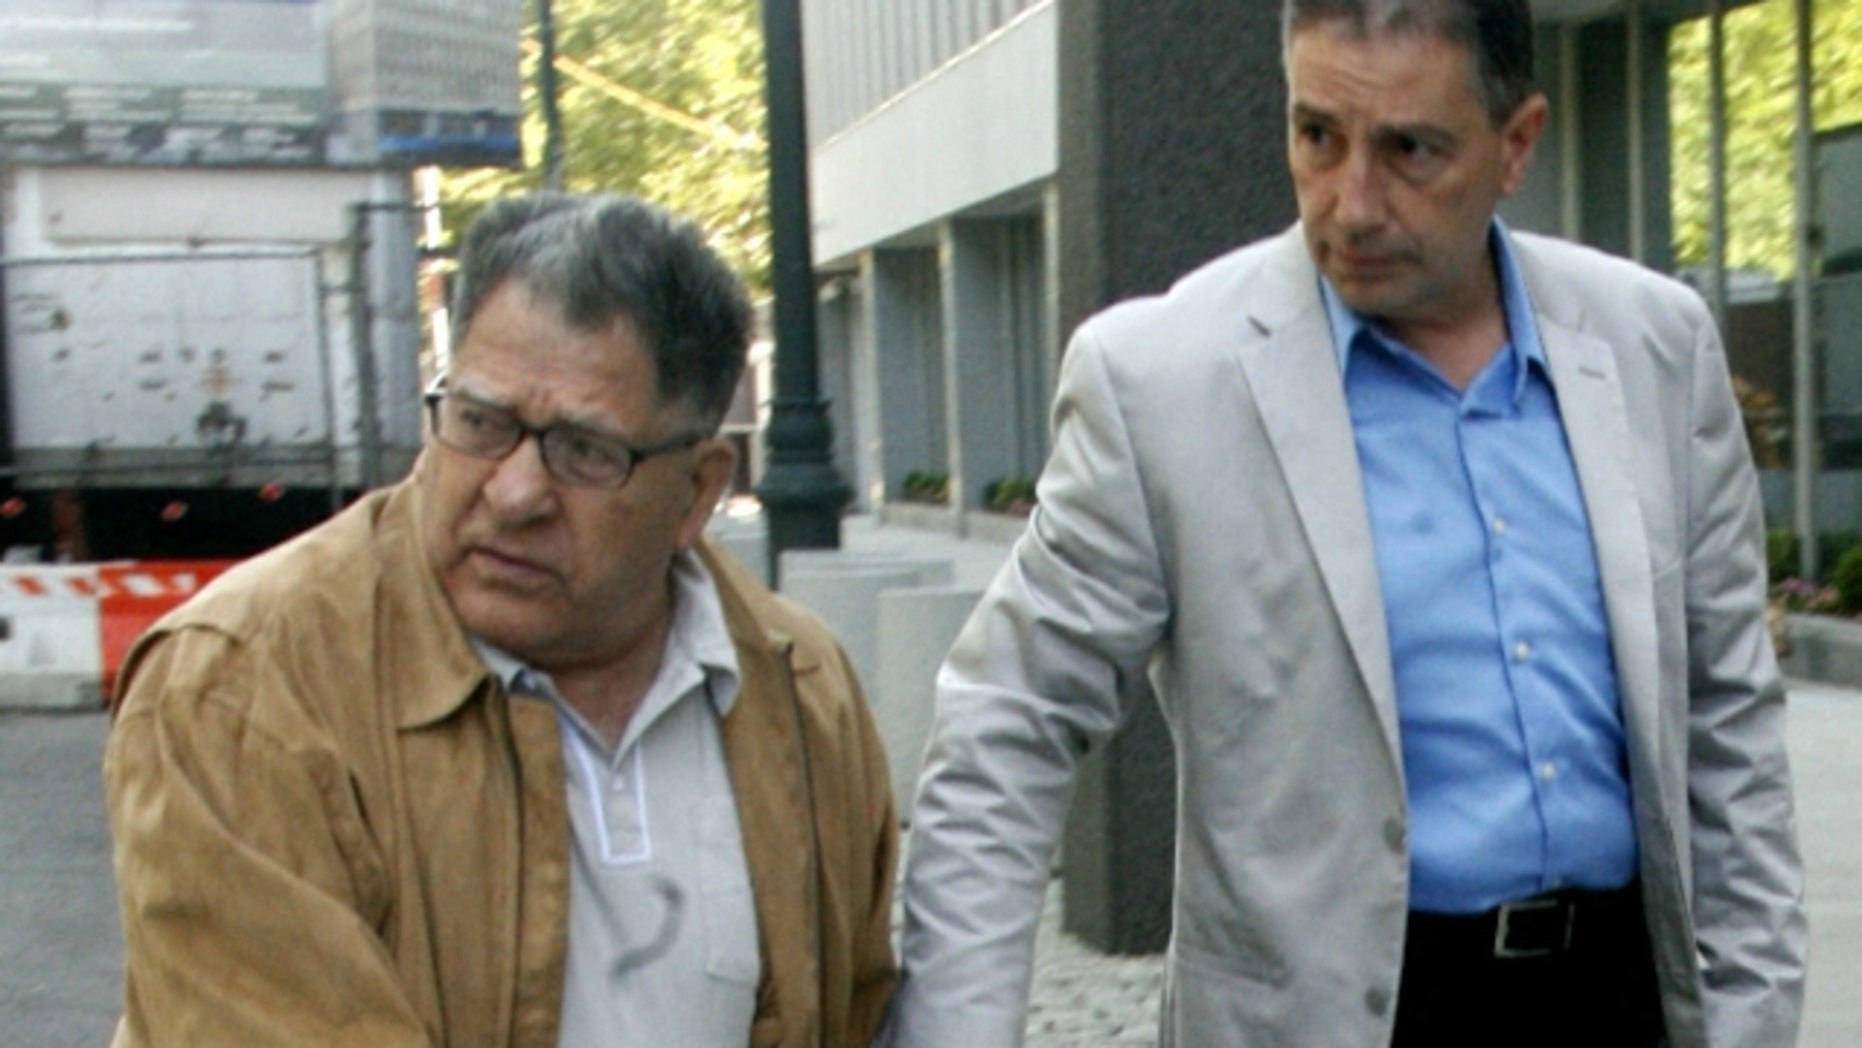 """June 15, 2010: John """"Sonny"""" Franzese, left, arrives at federal court in Brooklyn, New York. To the dismay of supporters who insist the frail 93-year-old is a decrepit shadow of his former self, the government has asked a judge in federal court in Brooklyn to sentence him on Friday to 12 years or more in prison. (AP)"""